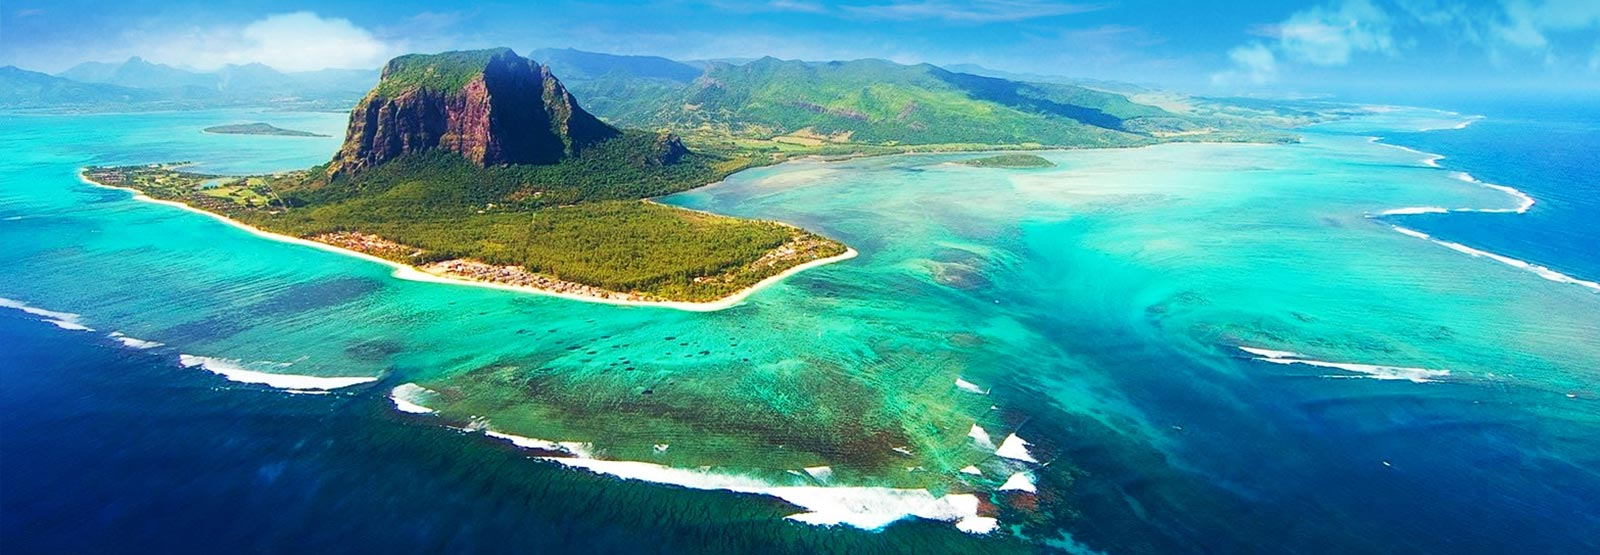 Tropical Island Beach Ambience Sound: Mauritius 🇲🇺 Dreamlike Tropical Island & Multi-cultural